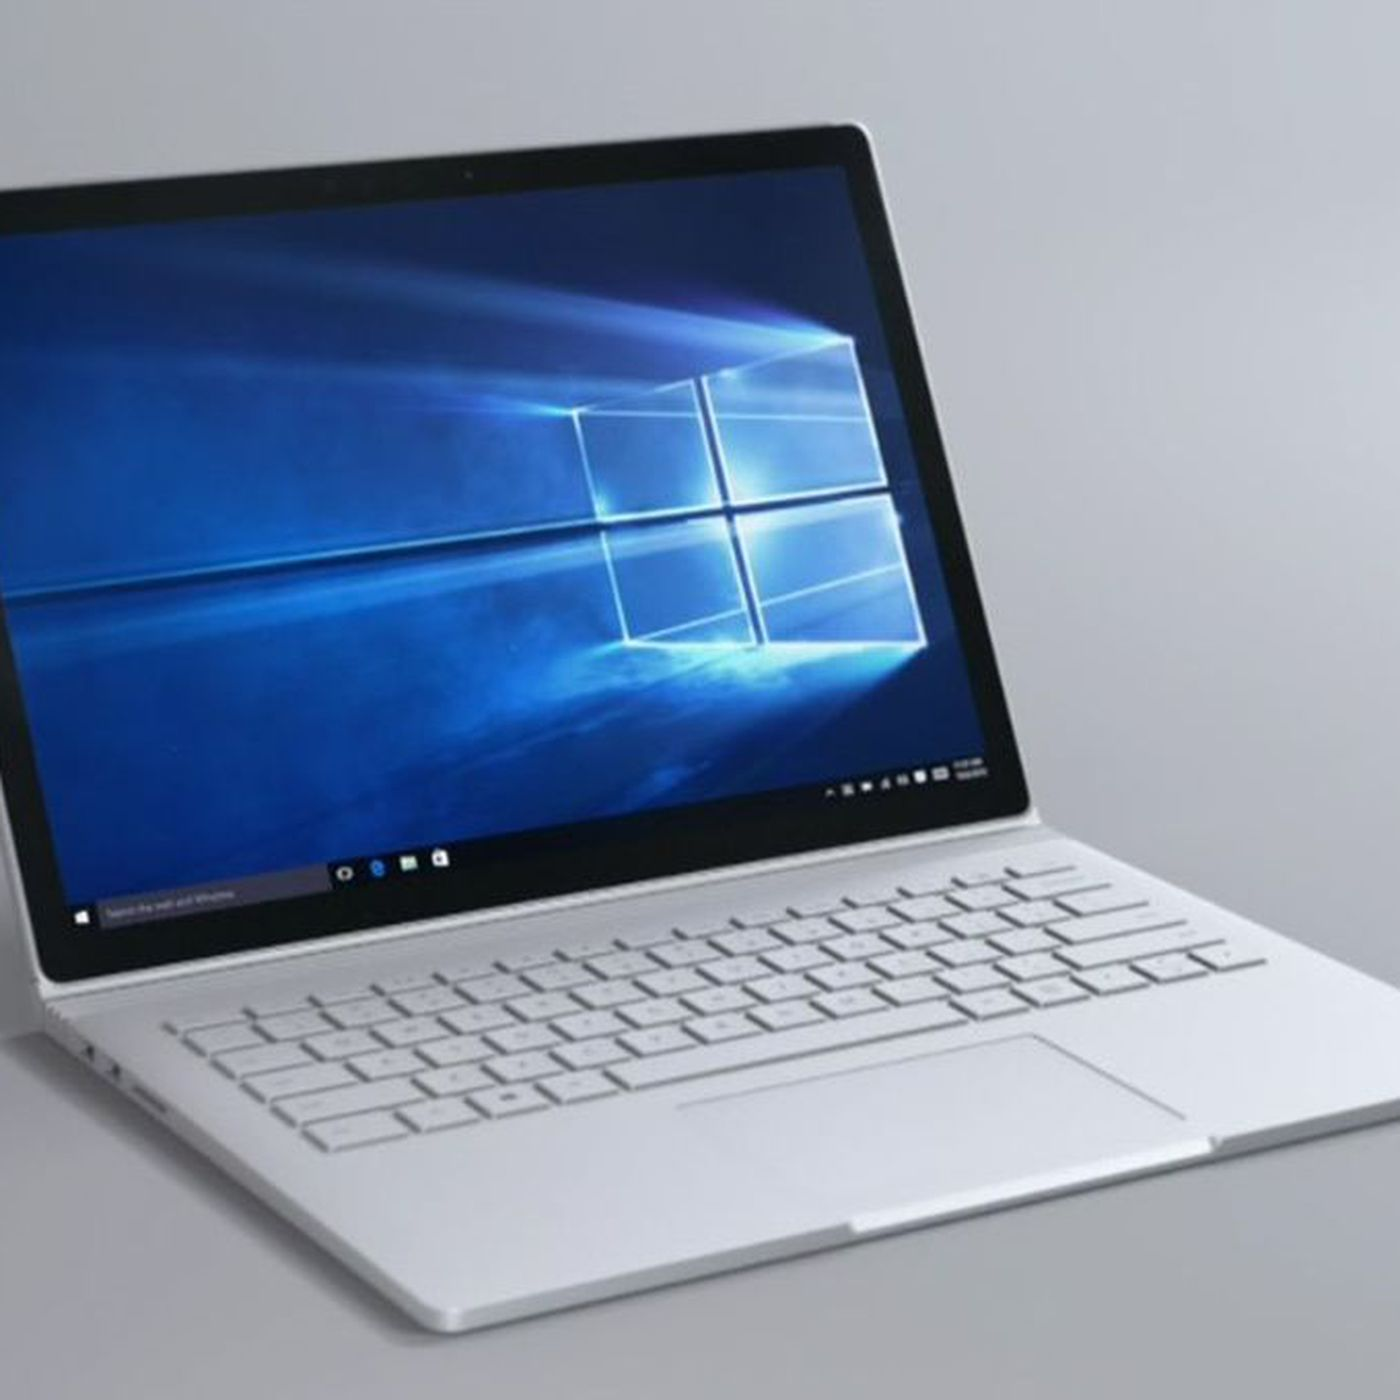 microsoft announces surface book laptop with 13 5 inch display